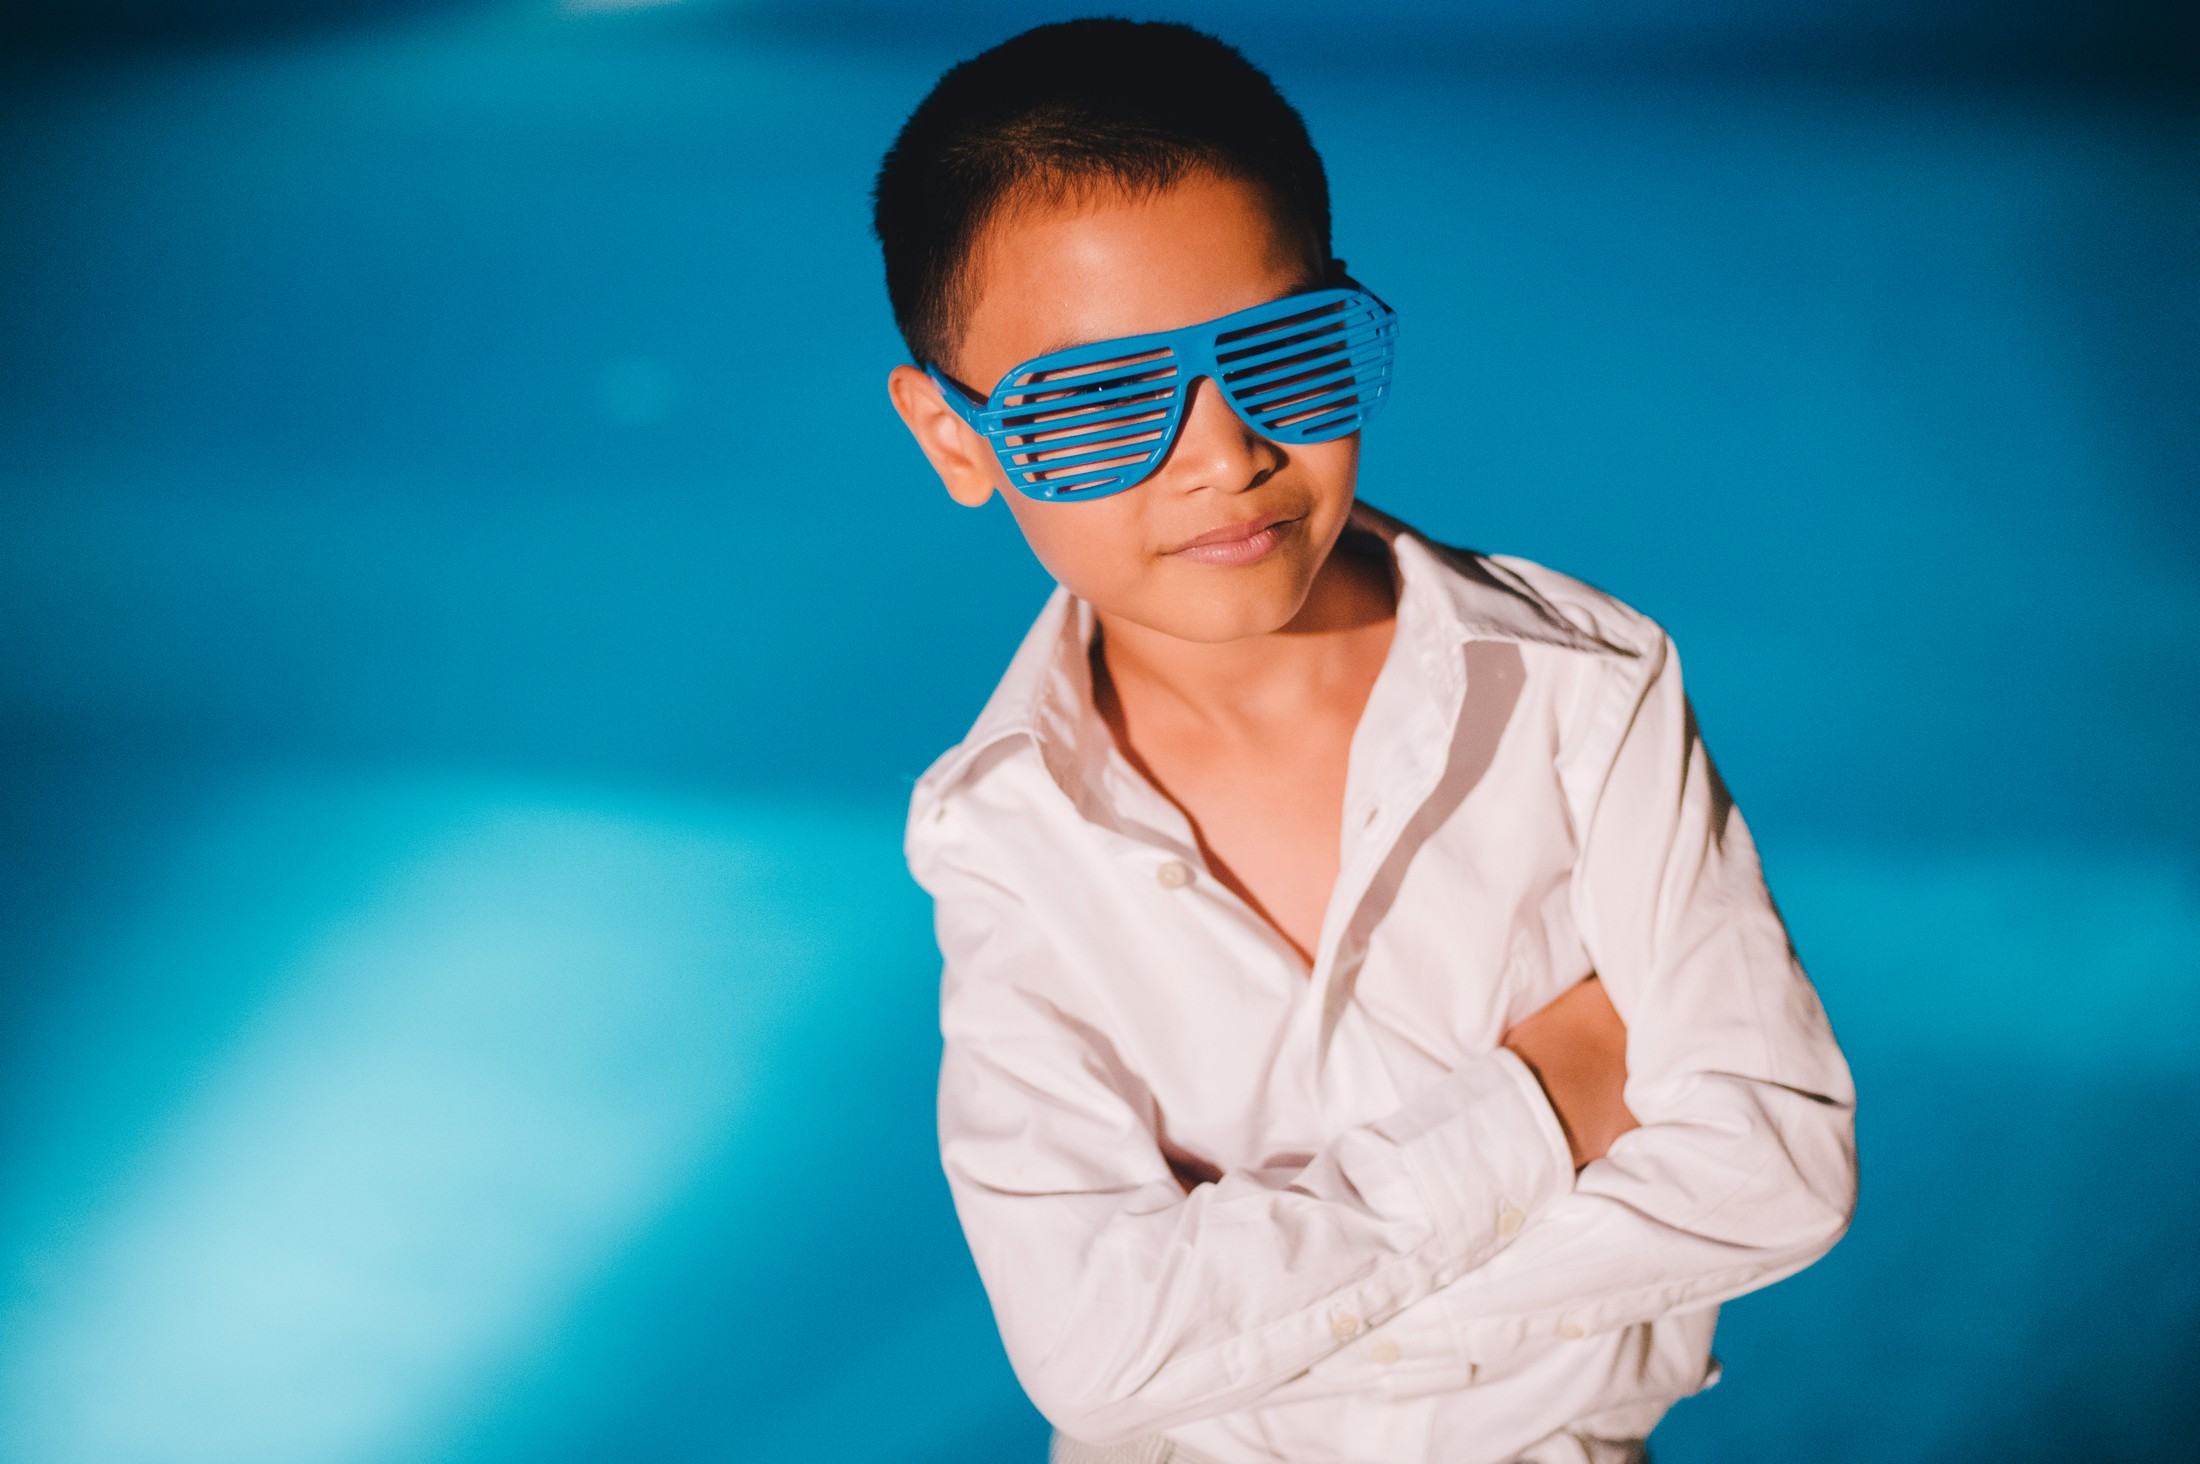 boy with funny blue glasses